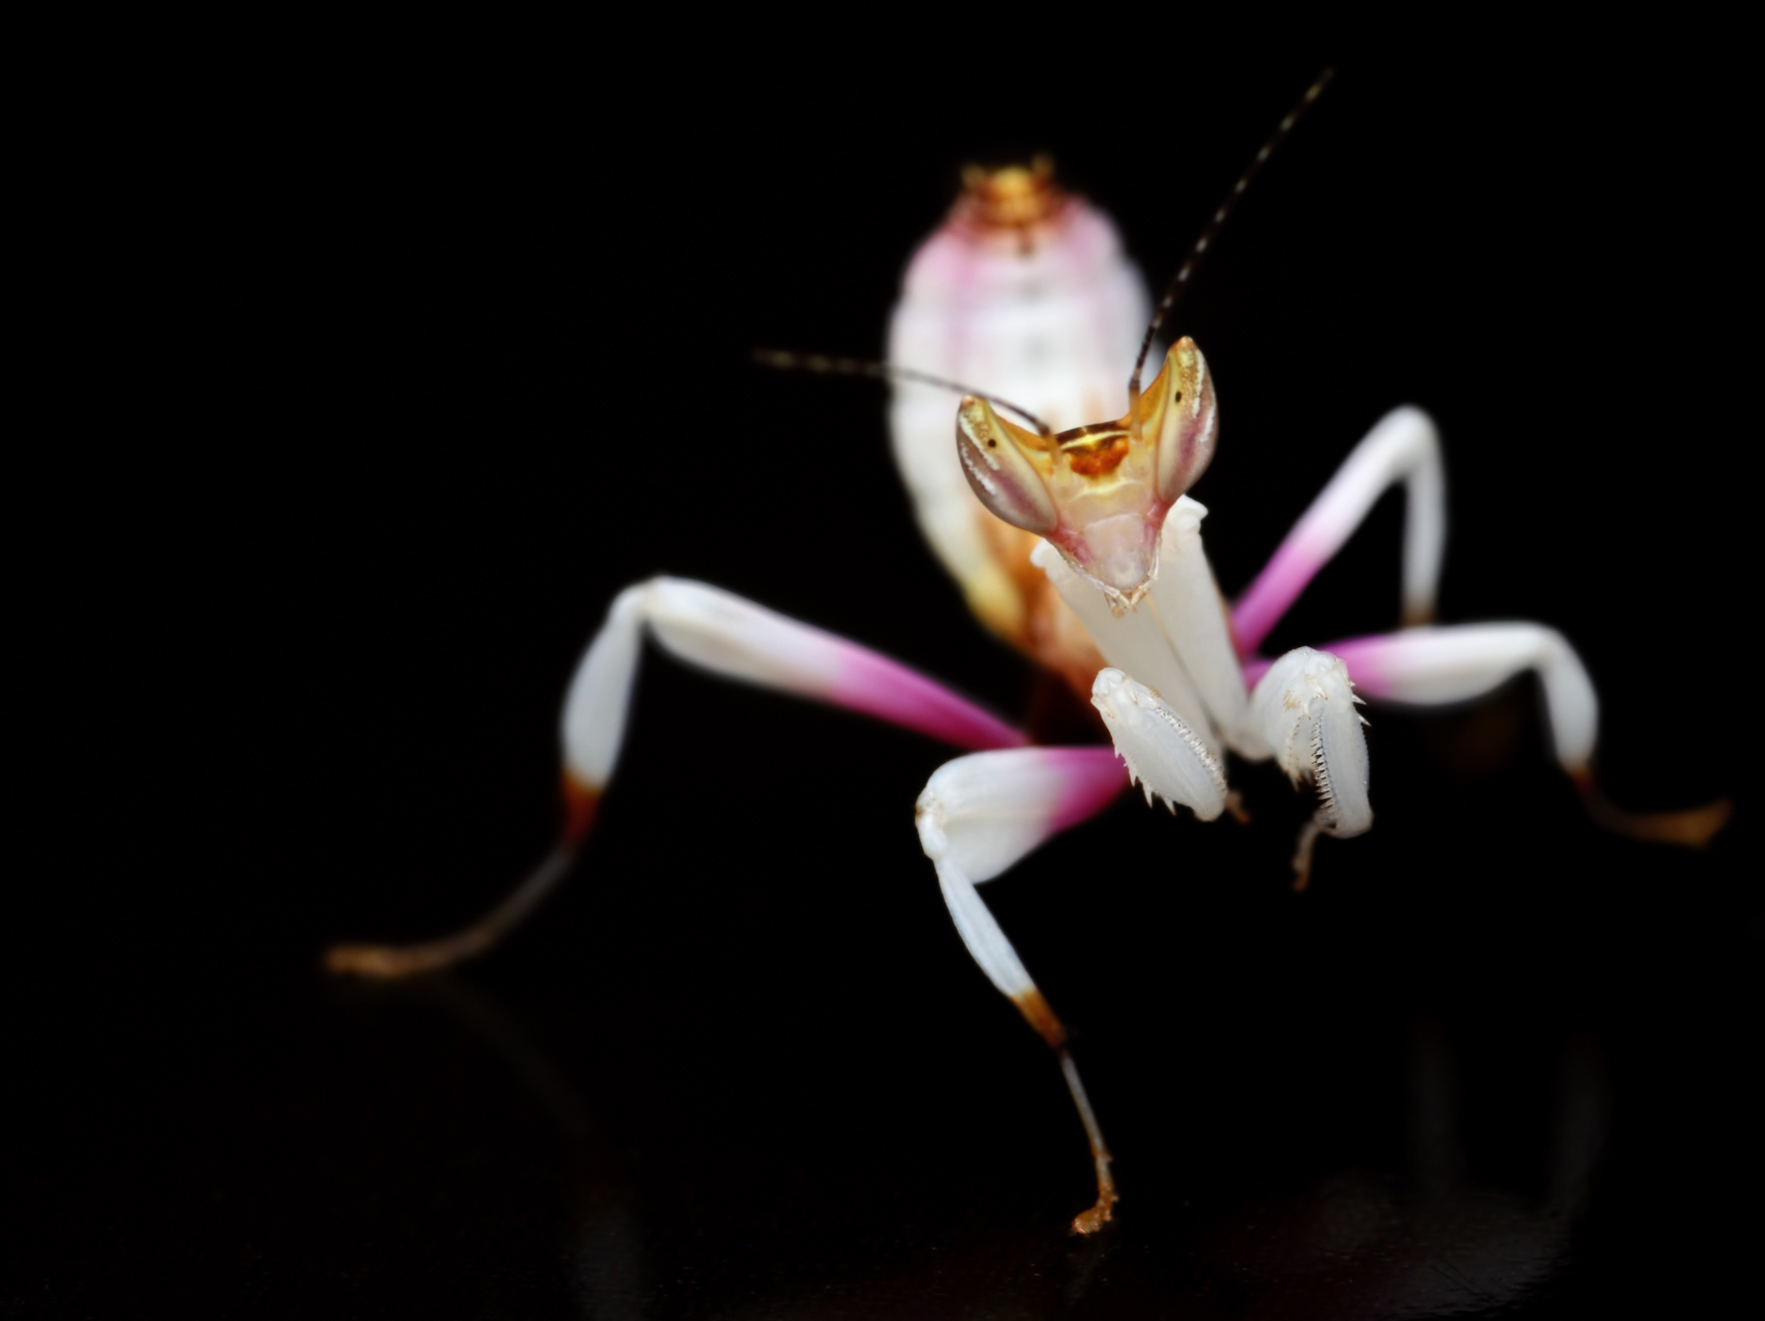 orchid mantis on black background